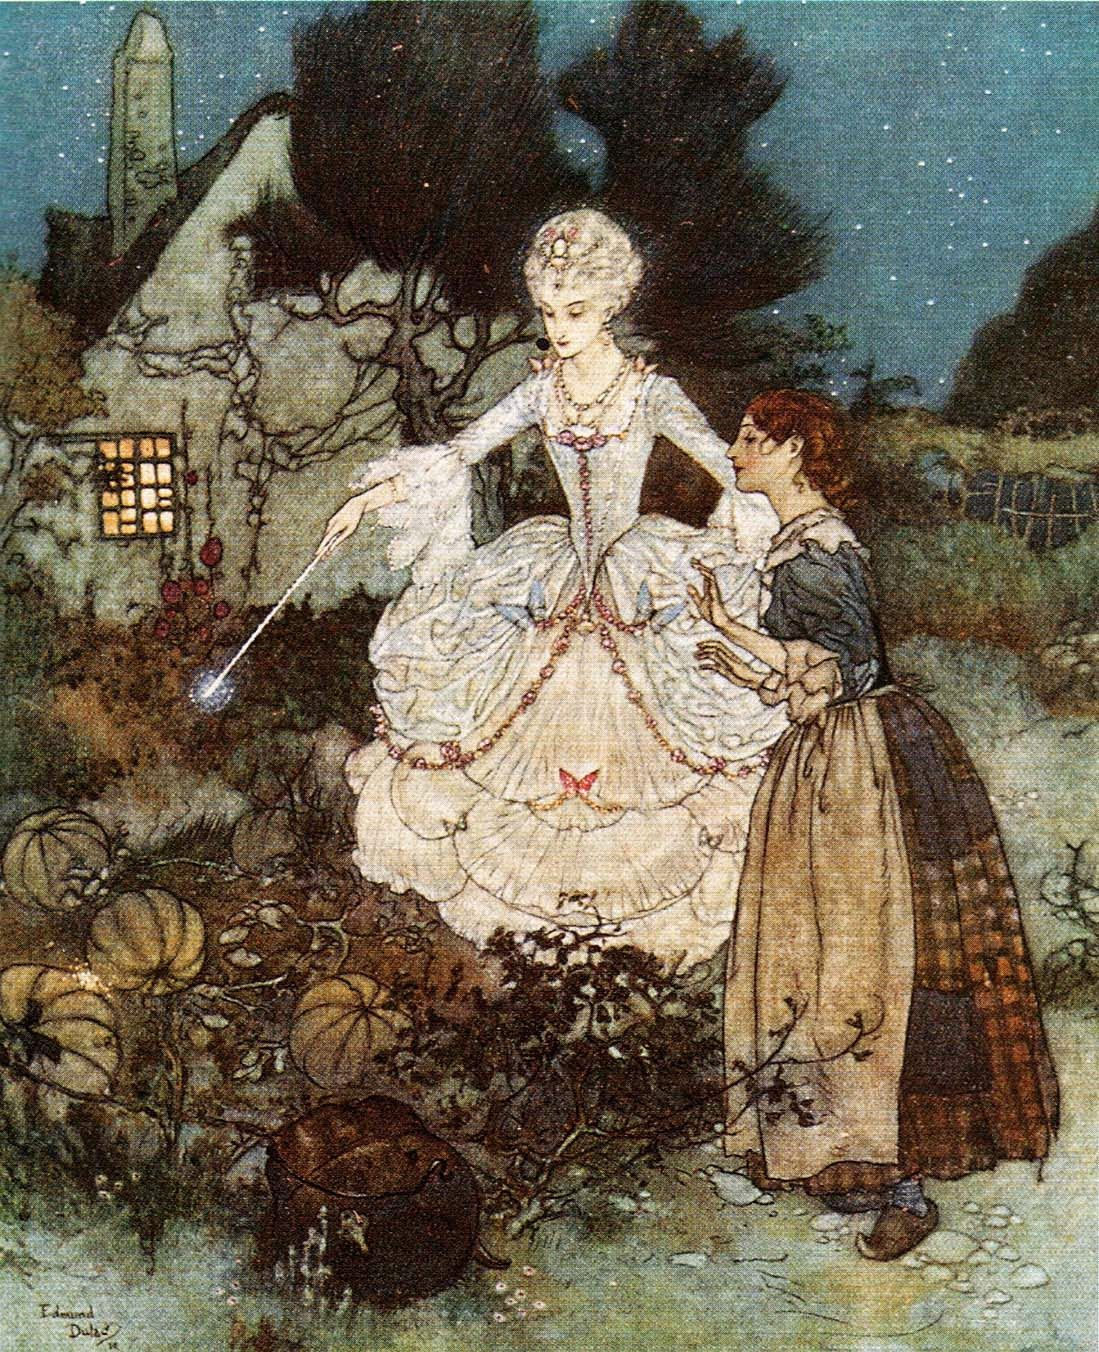 Cinderella - Edmund Dulac (illustrations for Perrault's Fairy Tales, 1912)